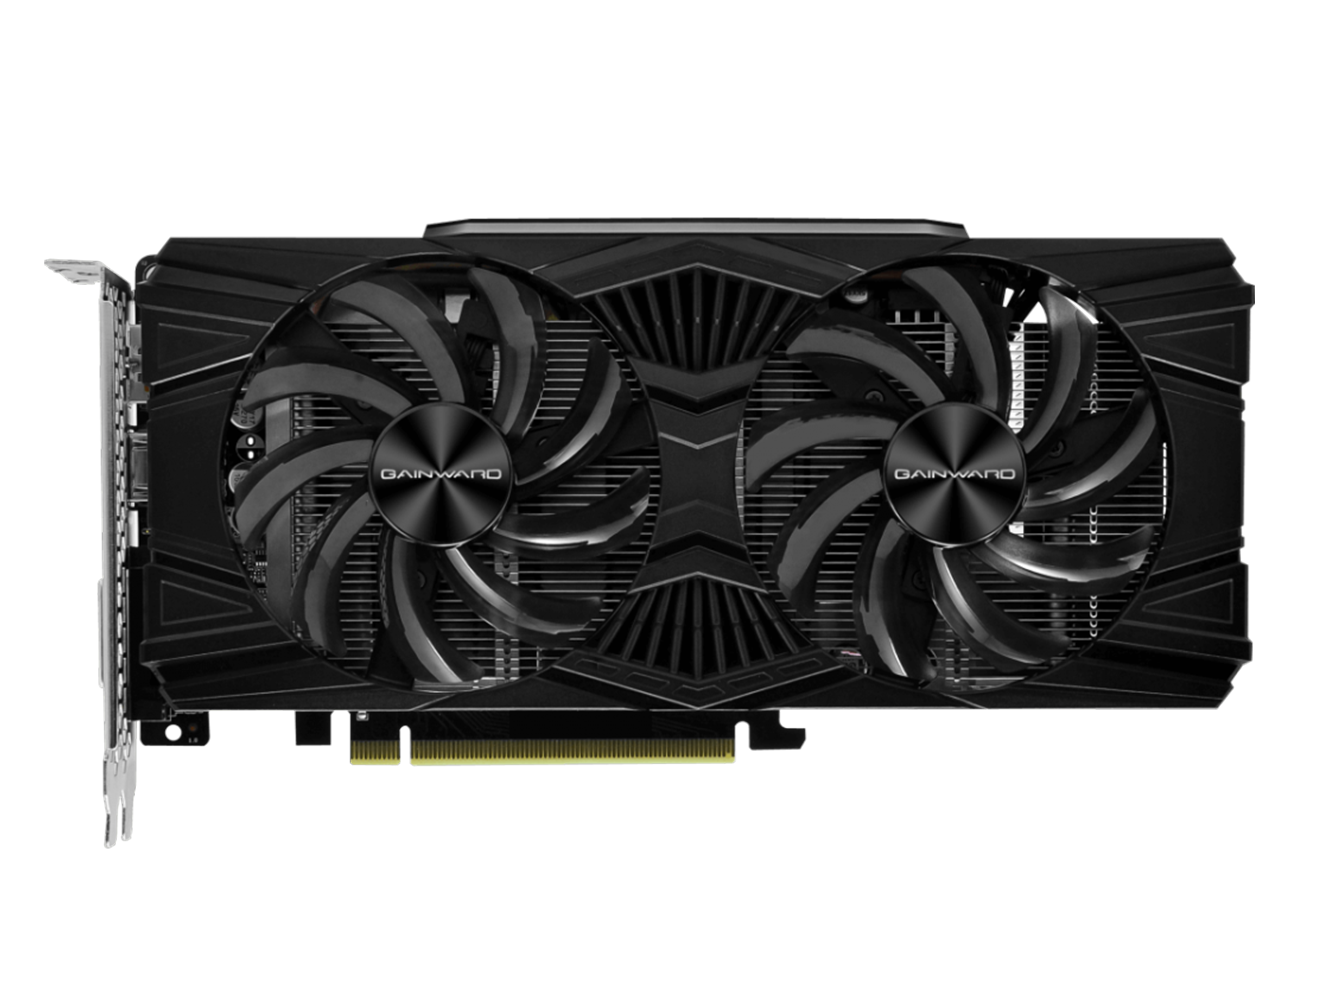 Gainward GeForce RTX 2060 SG 8GB